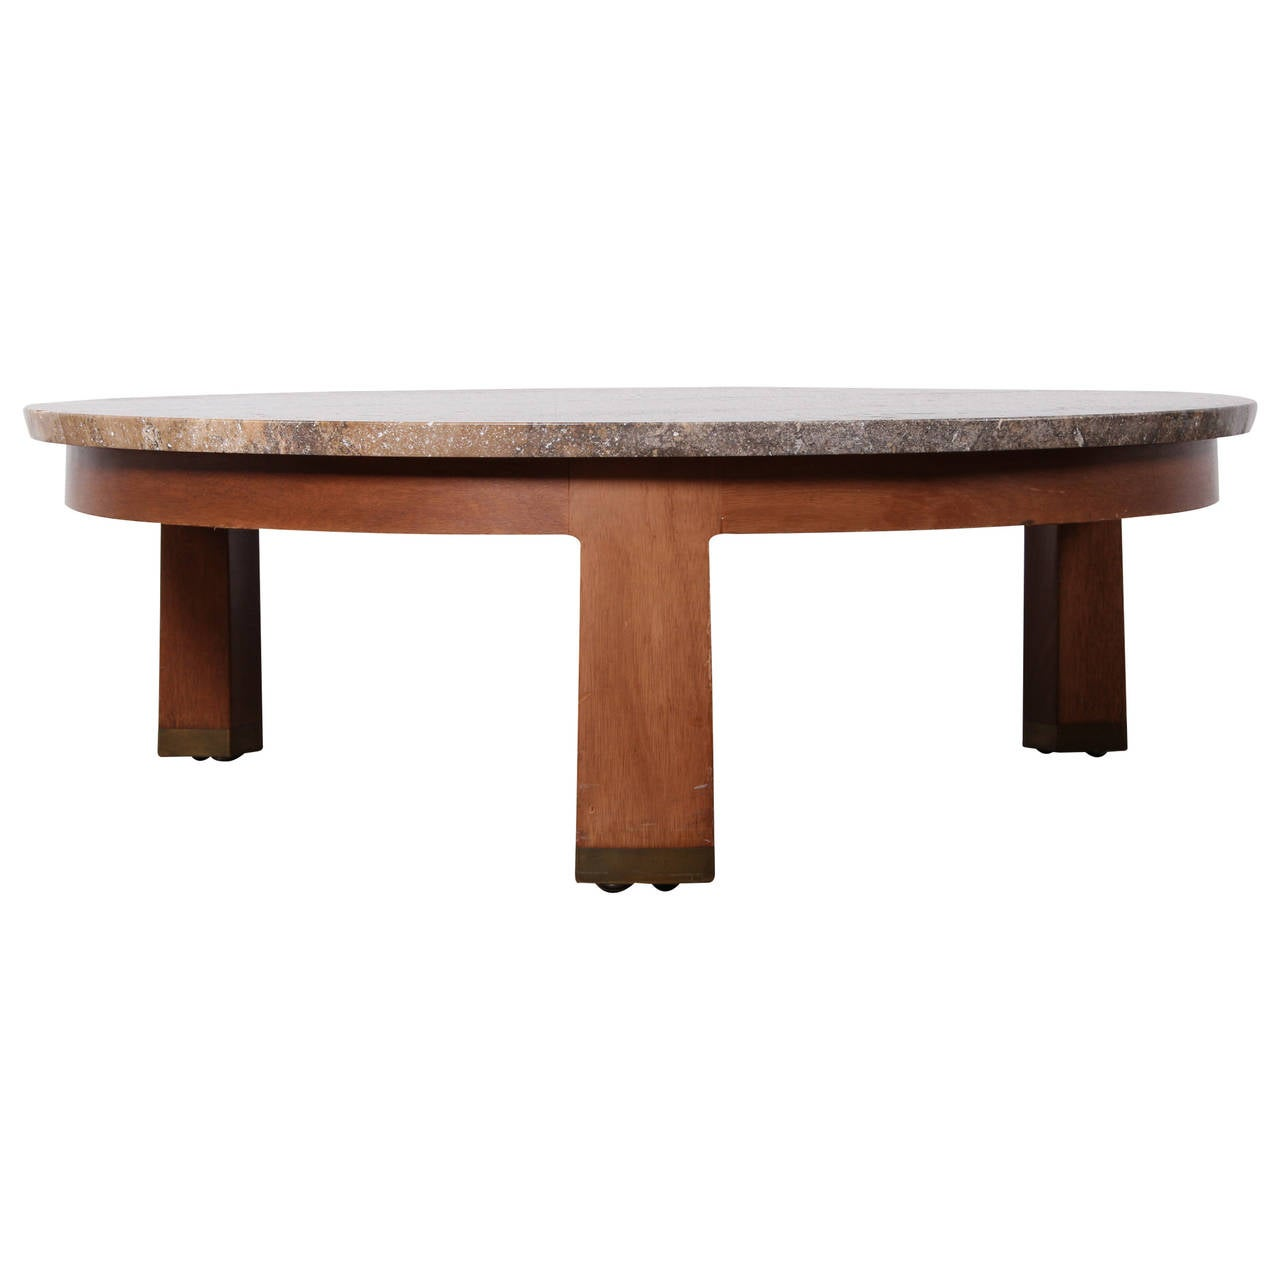 Travertine And Mahogany Coffee Table By Edward Wormley For Dunbar For Sale At 1stdibs